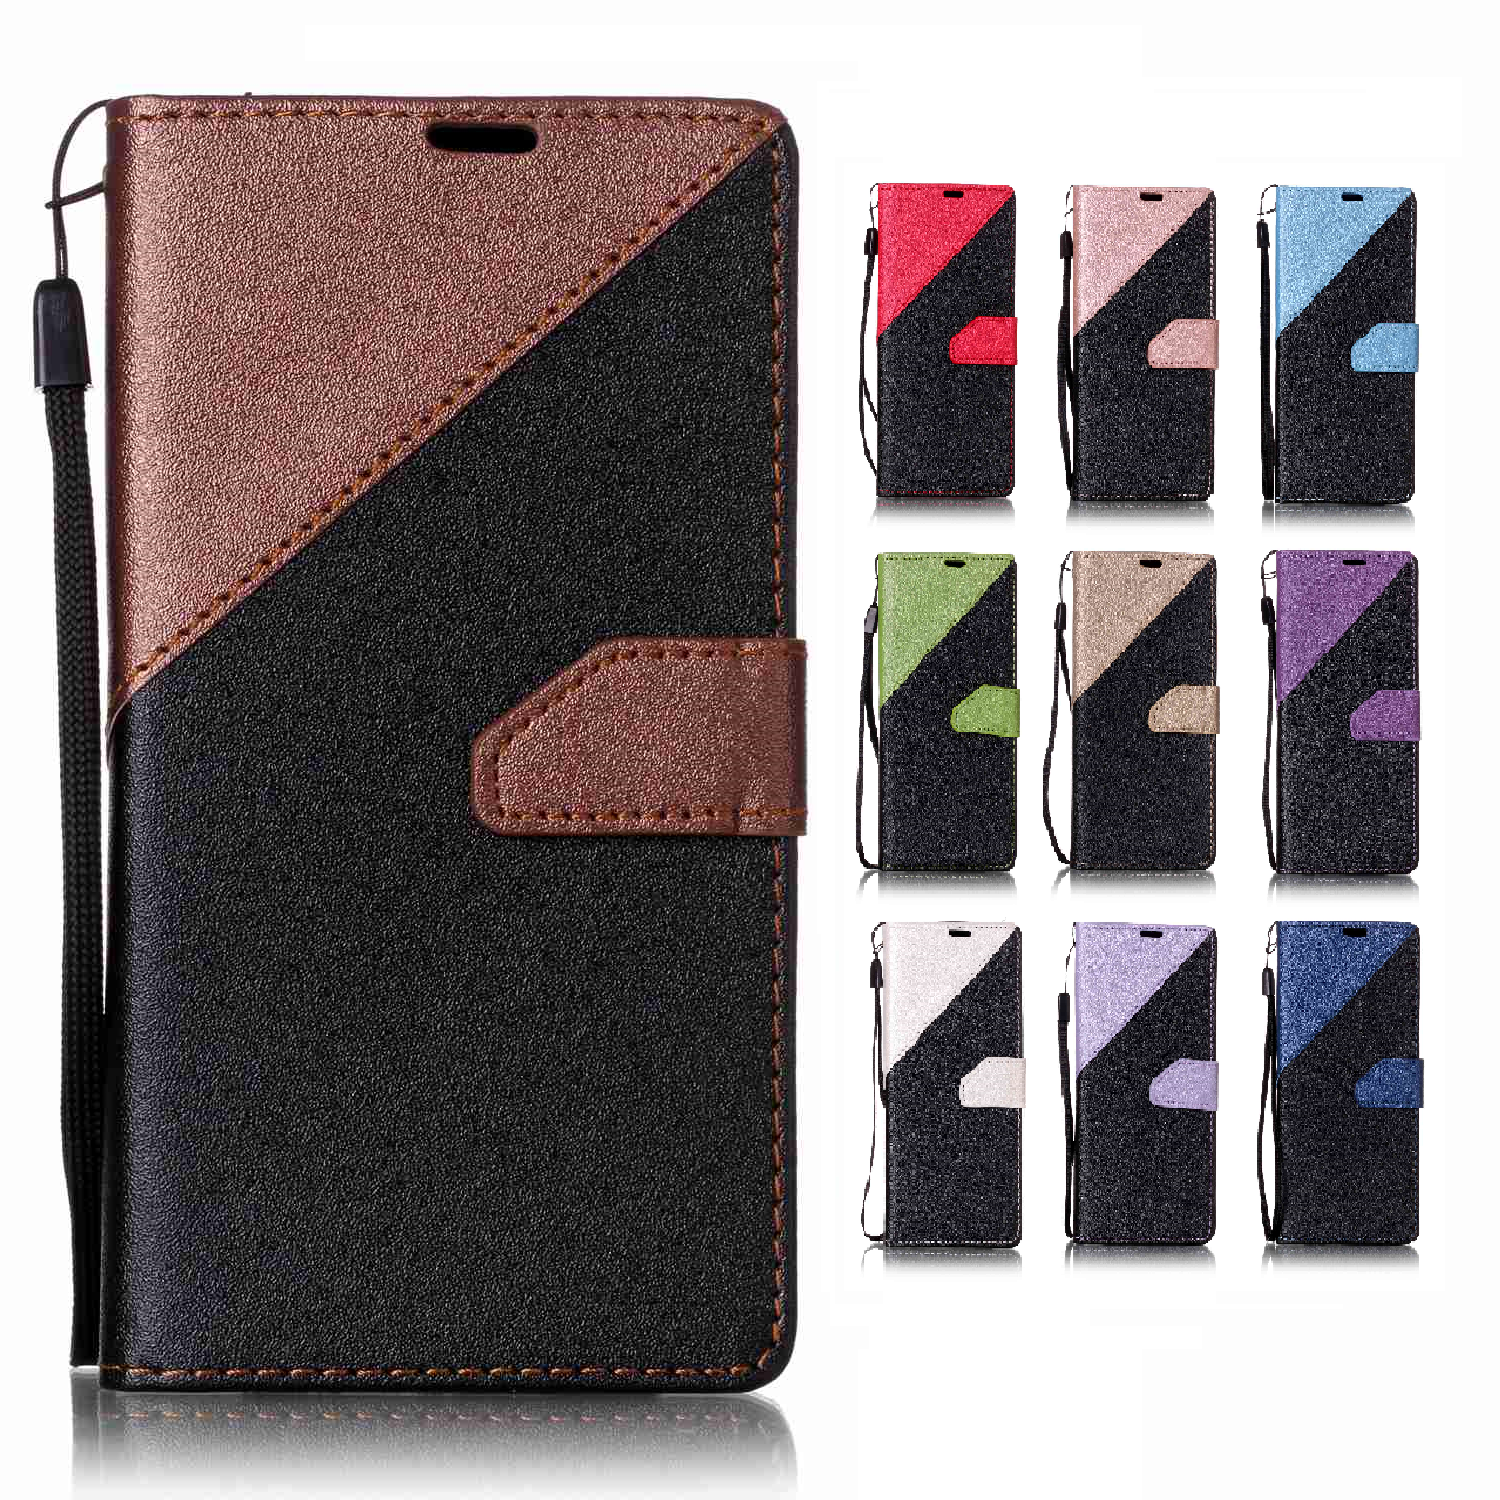 Matte Leather Cover Flip Case for Apple 7 Plus iPhone 7Plus iPhone7Plus 5.5 Phone Cases with Stand Card Holder